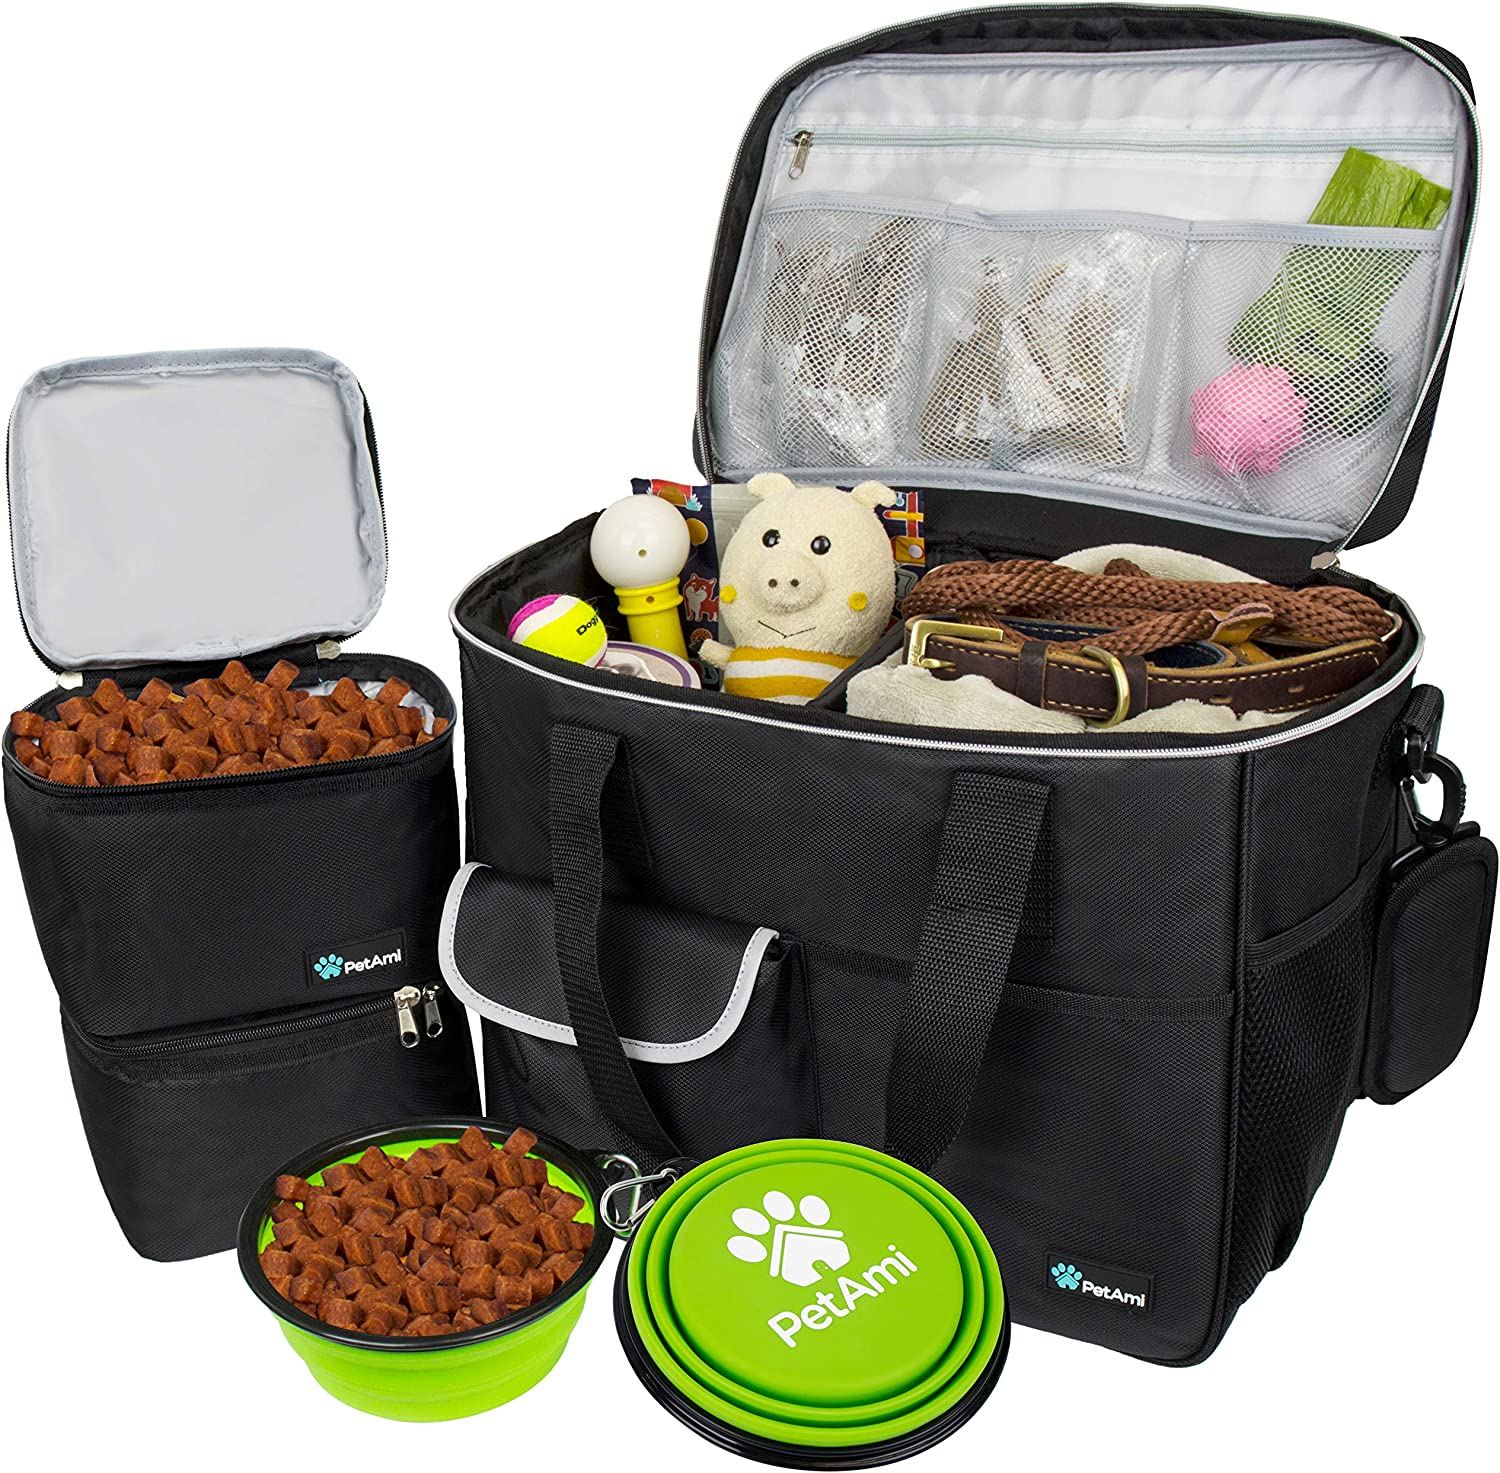 PetAmi SALENEW大人気! Dog Travel Bag Airline Mul Approved 爆売りセール開催中 Organizer with Tote